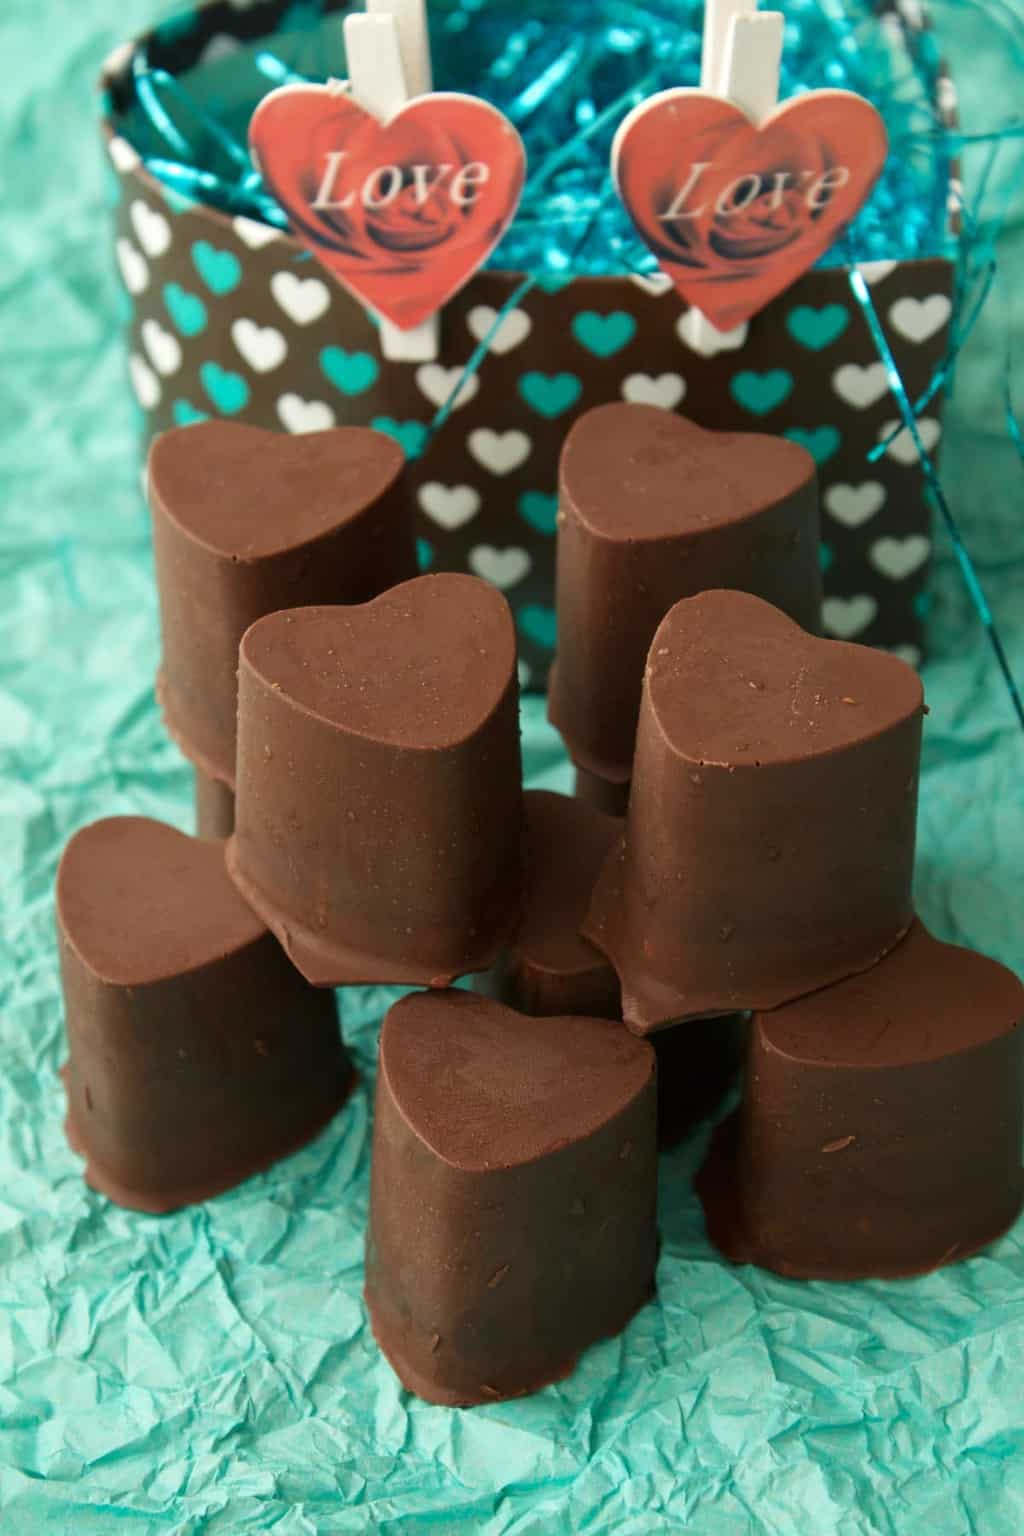 Heart-shaped vegan chocolate caramels on green tissue paper.